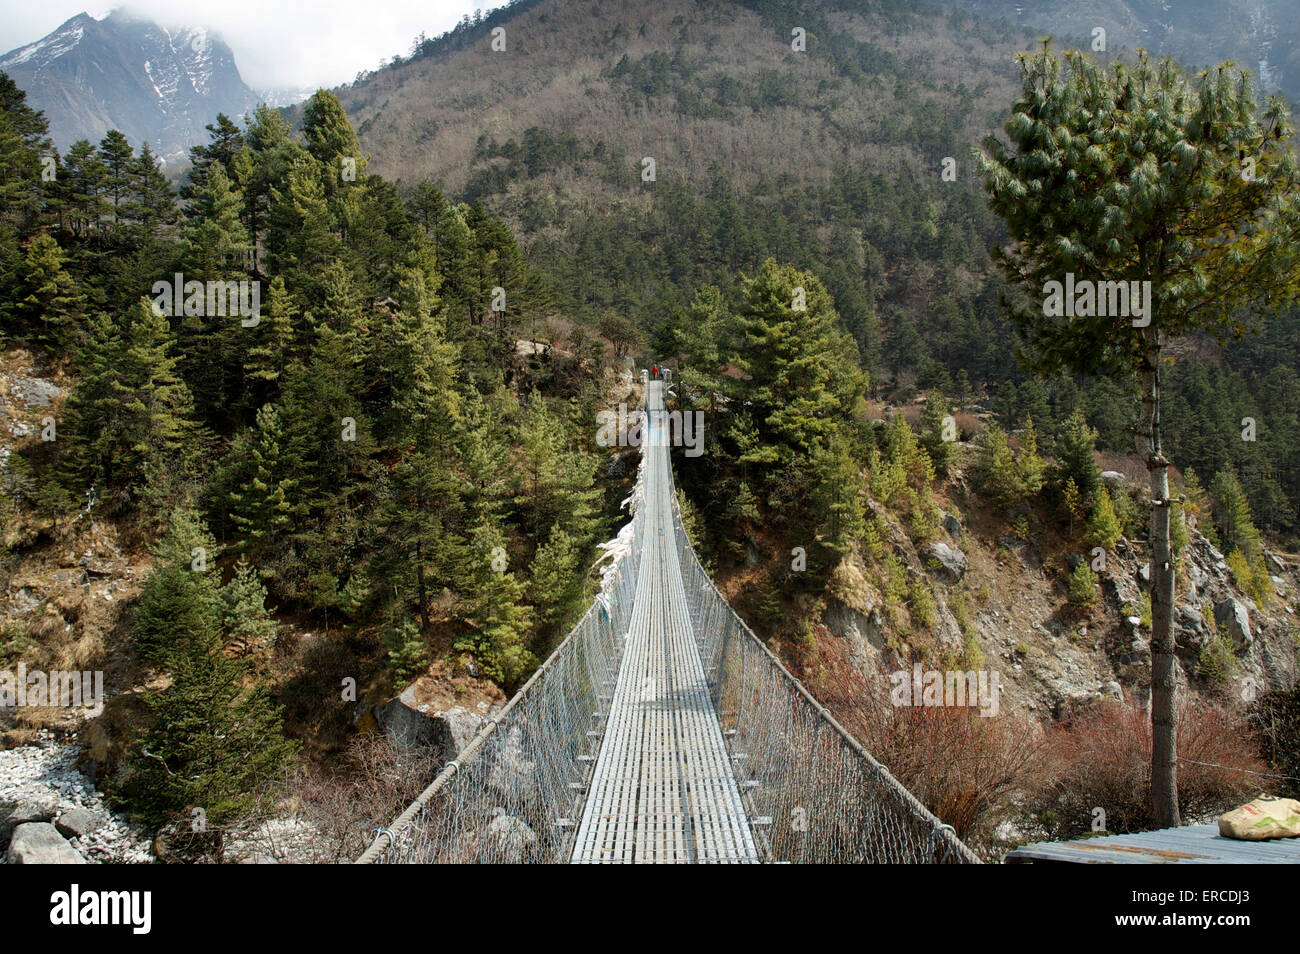 Steel foot bridge over the Dudh Kosi river, Nepal - Stock Image